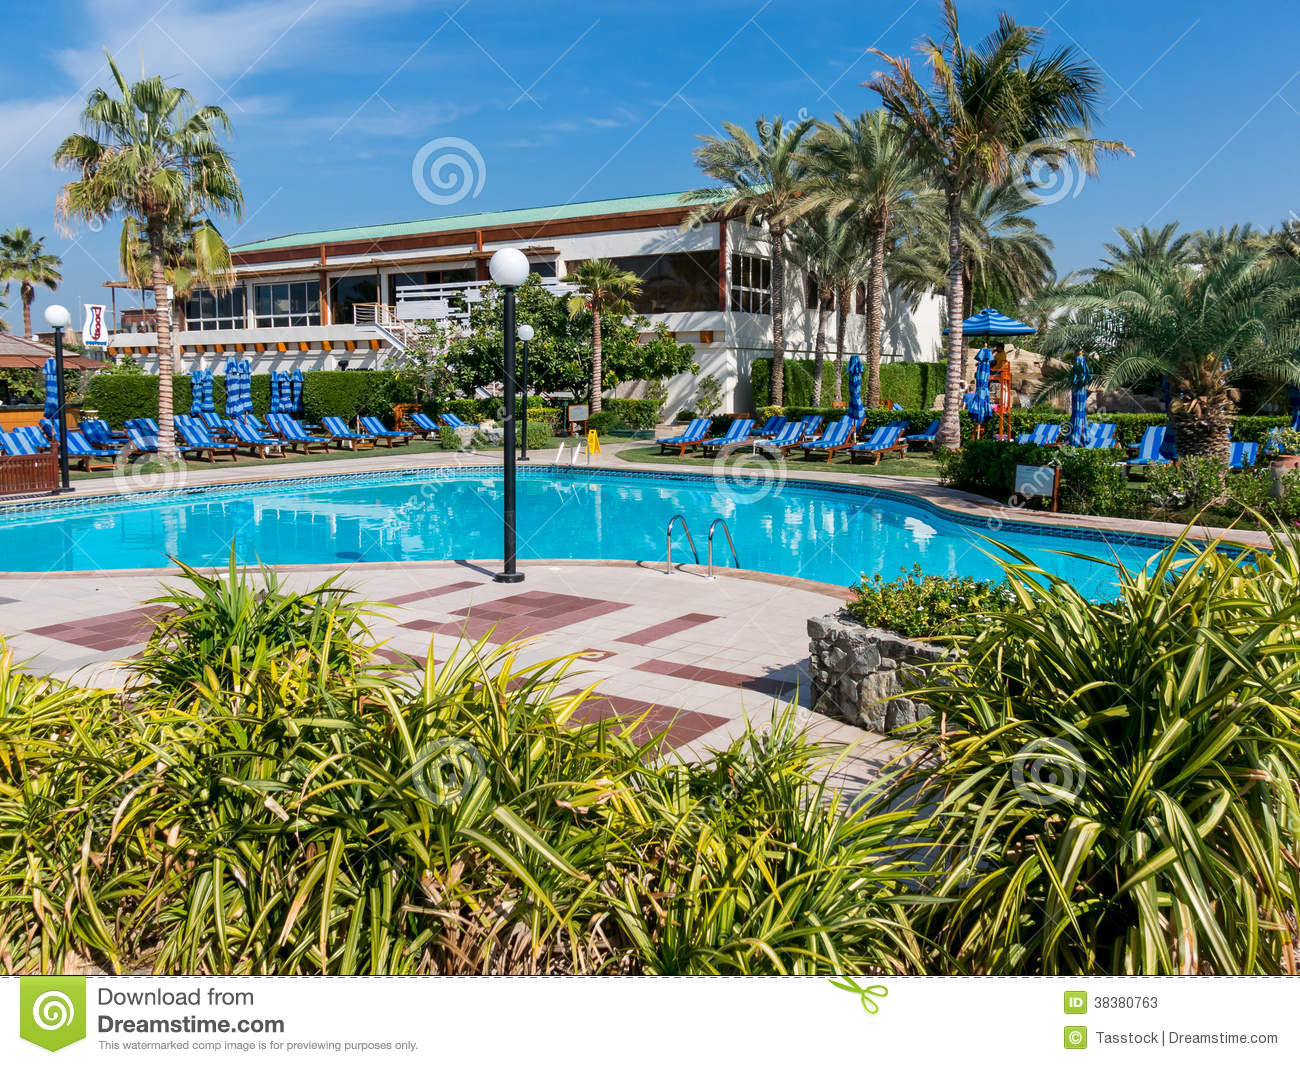 Pool and sunbeds in hotel resort dubai editorial stock for Garden pool dubai